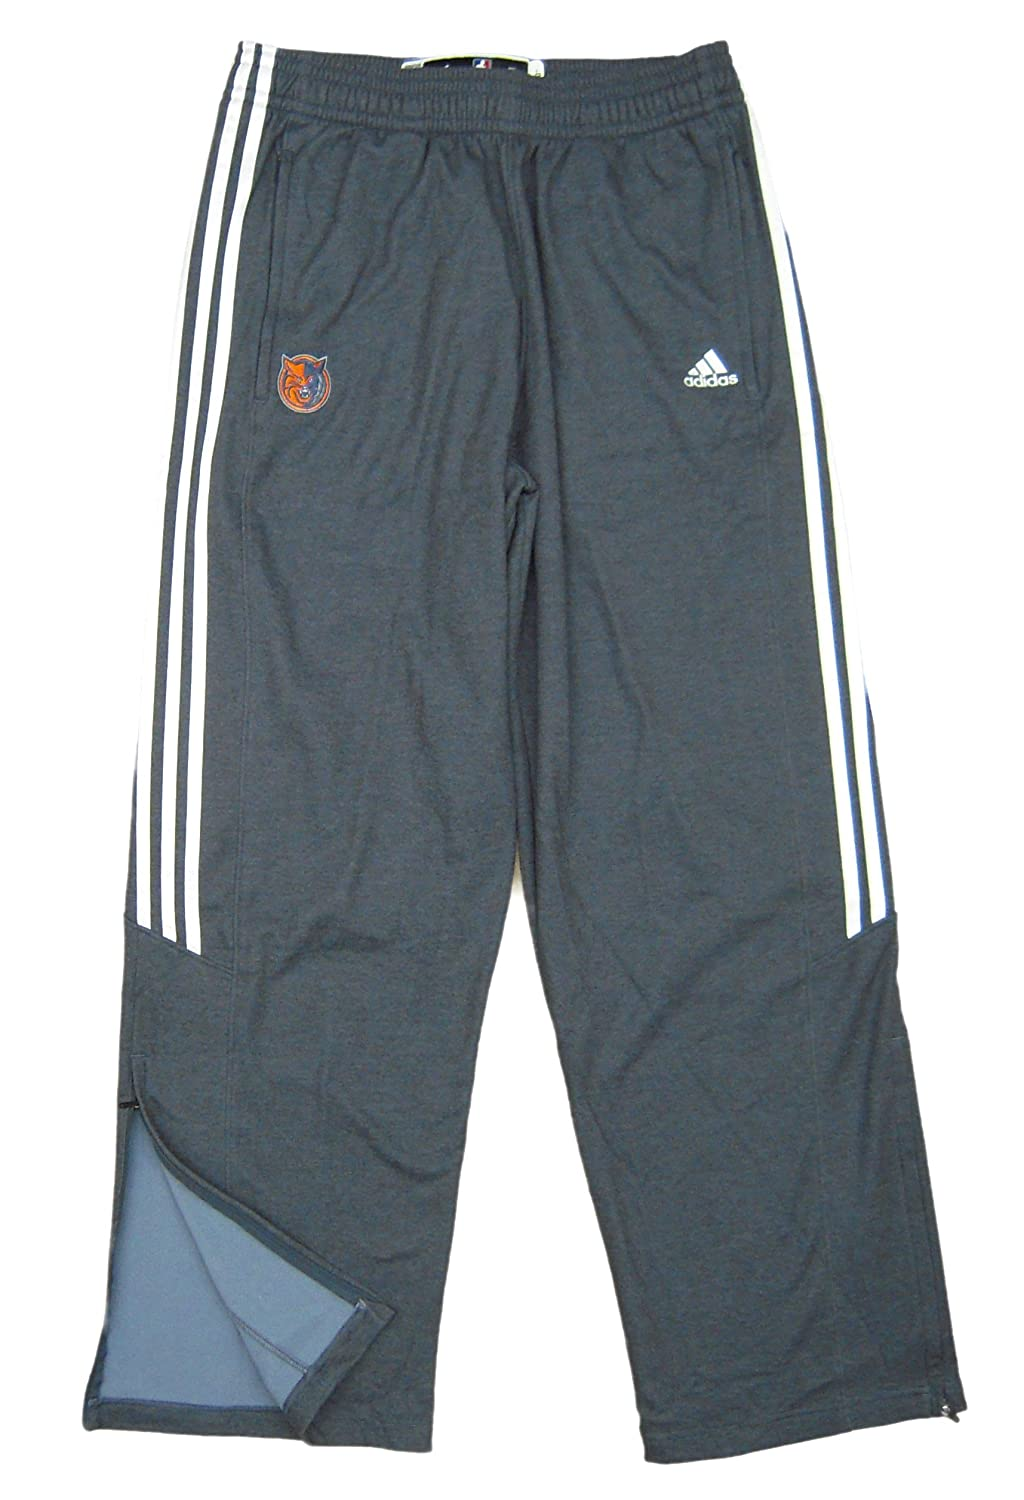 NBA Charlotte Bobcats Team Issued adidas Sweatpants - Size 2XL +2' Length